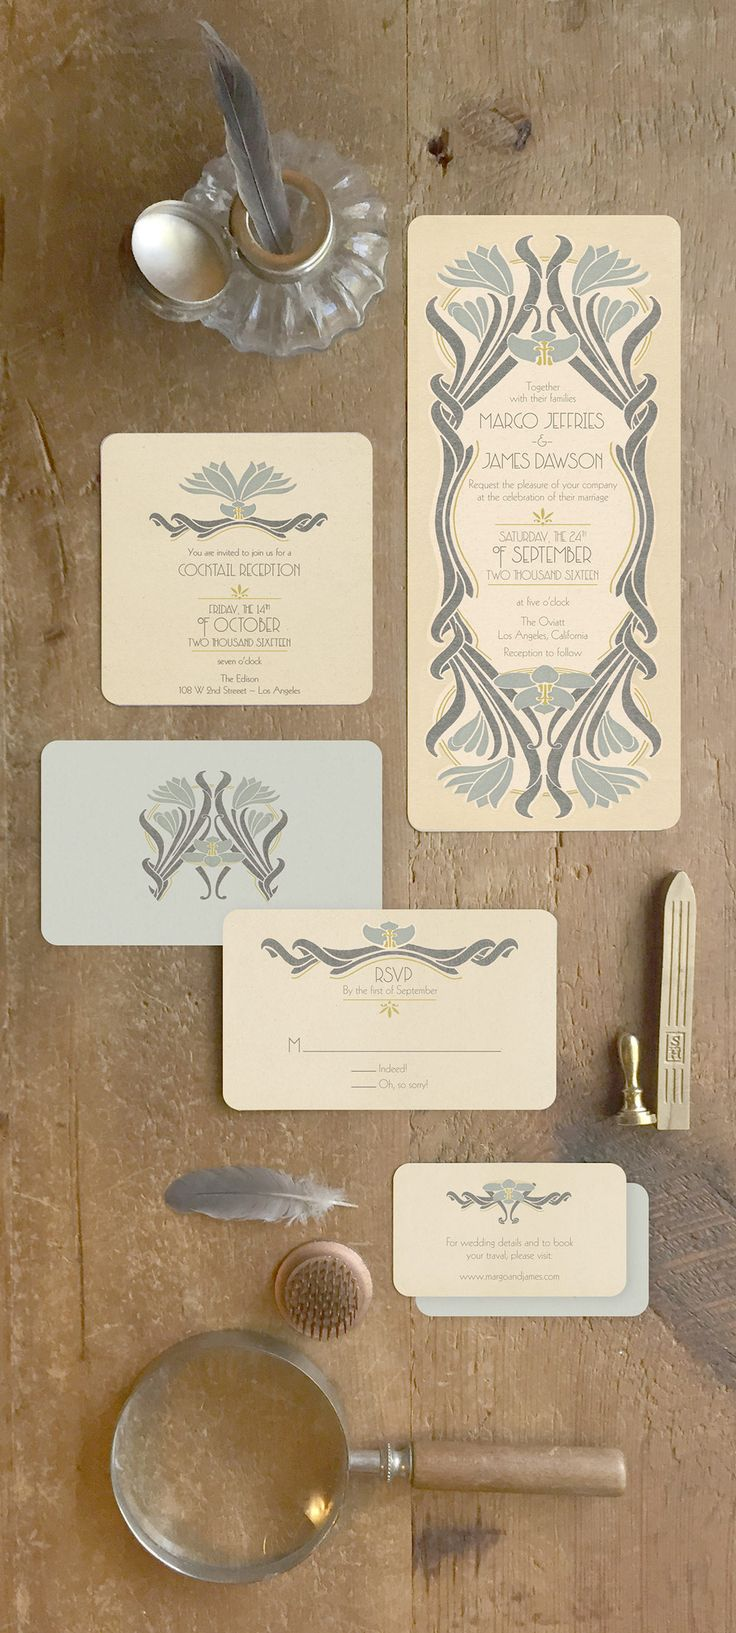 INTAGE WEDDING INVITATIONS What a great way to set the tone of your wedding! A perfect blend of Art Nouveau merging into Art Deco! These invitations can accommodate your custom wording and wedding colors and can be used as Save the Dates or in a full invitation suite with reply cards, info cards, menu's, placards etc.  Designed by GoGoSnap!